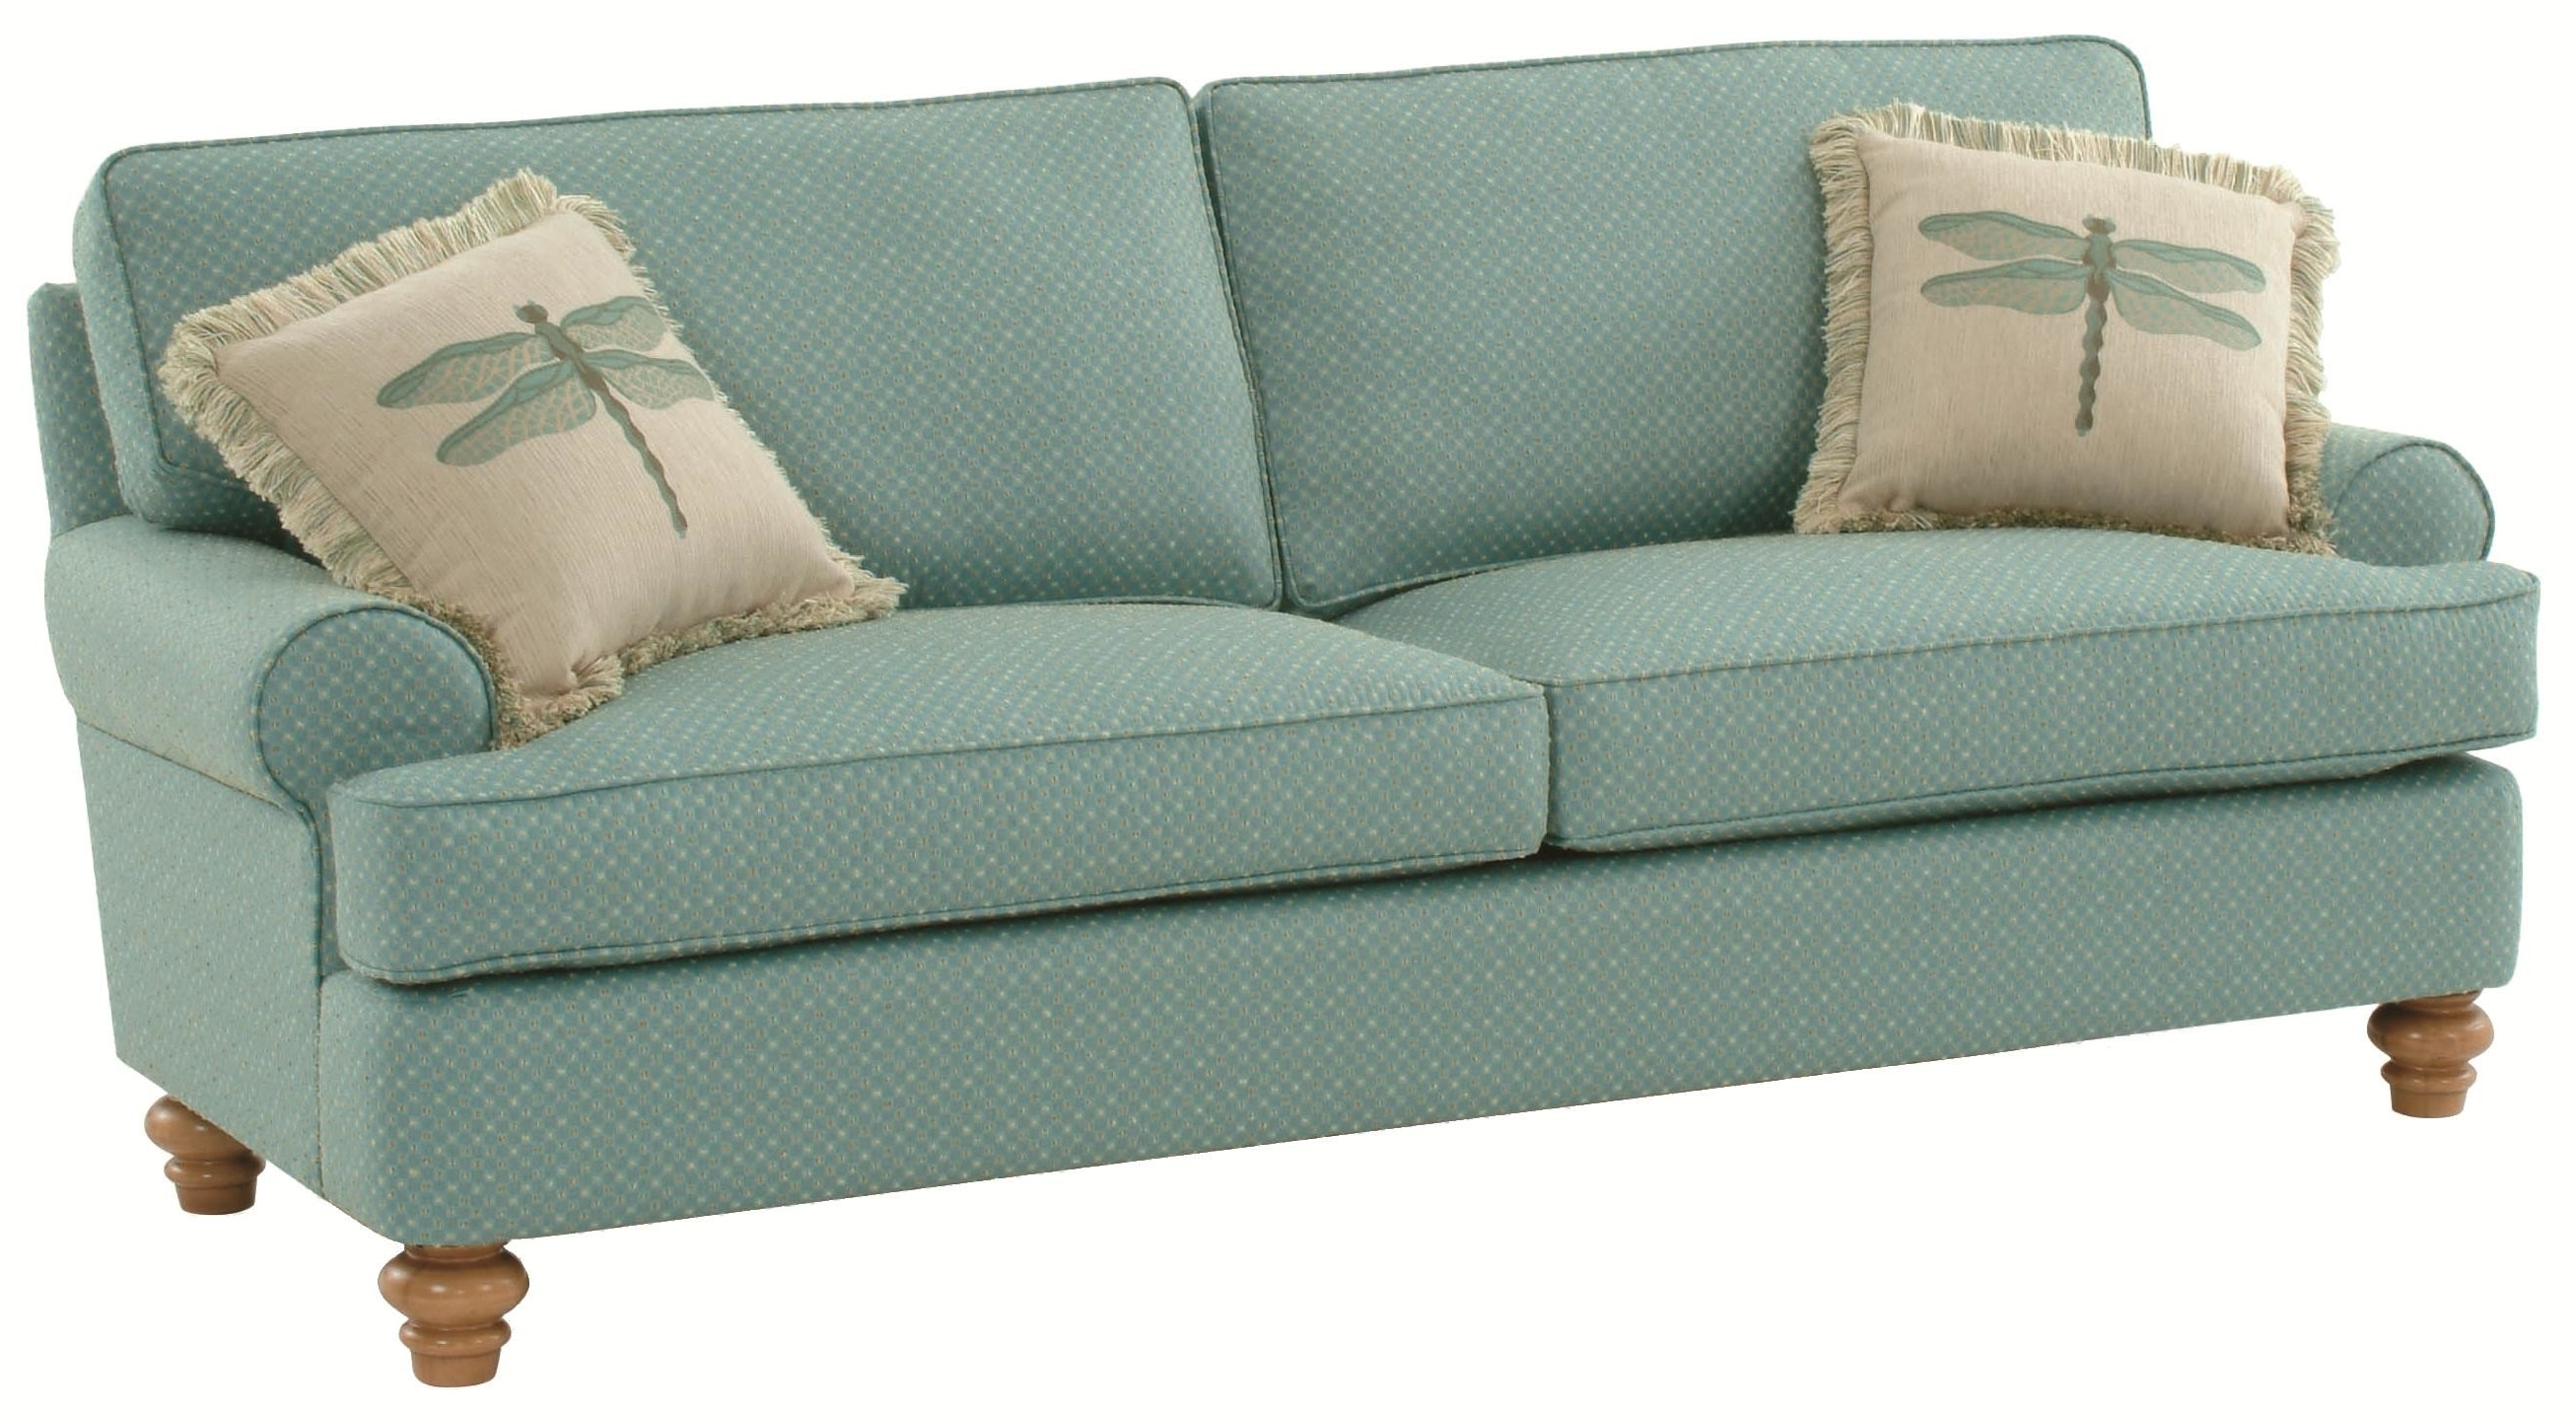 St Cloud Mn Sectional Sofas Regarding Latest Hom Furniture St Cloud Mn (View 15 of 20)